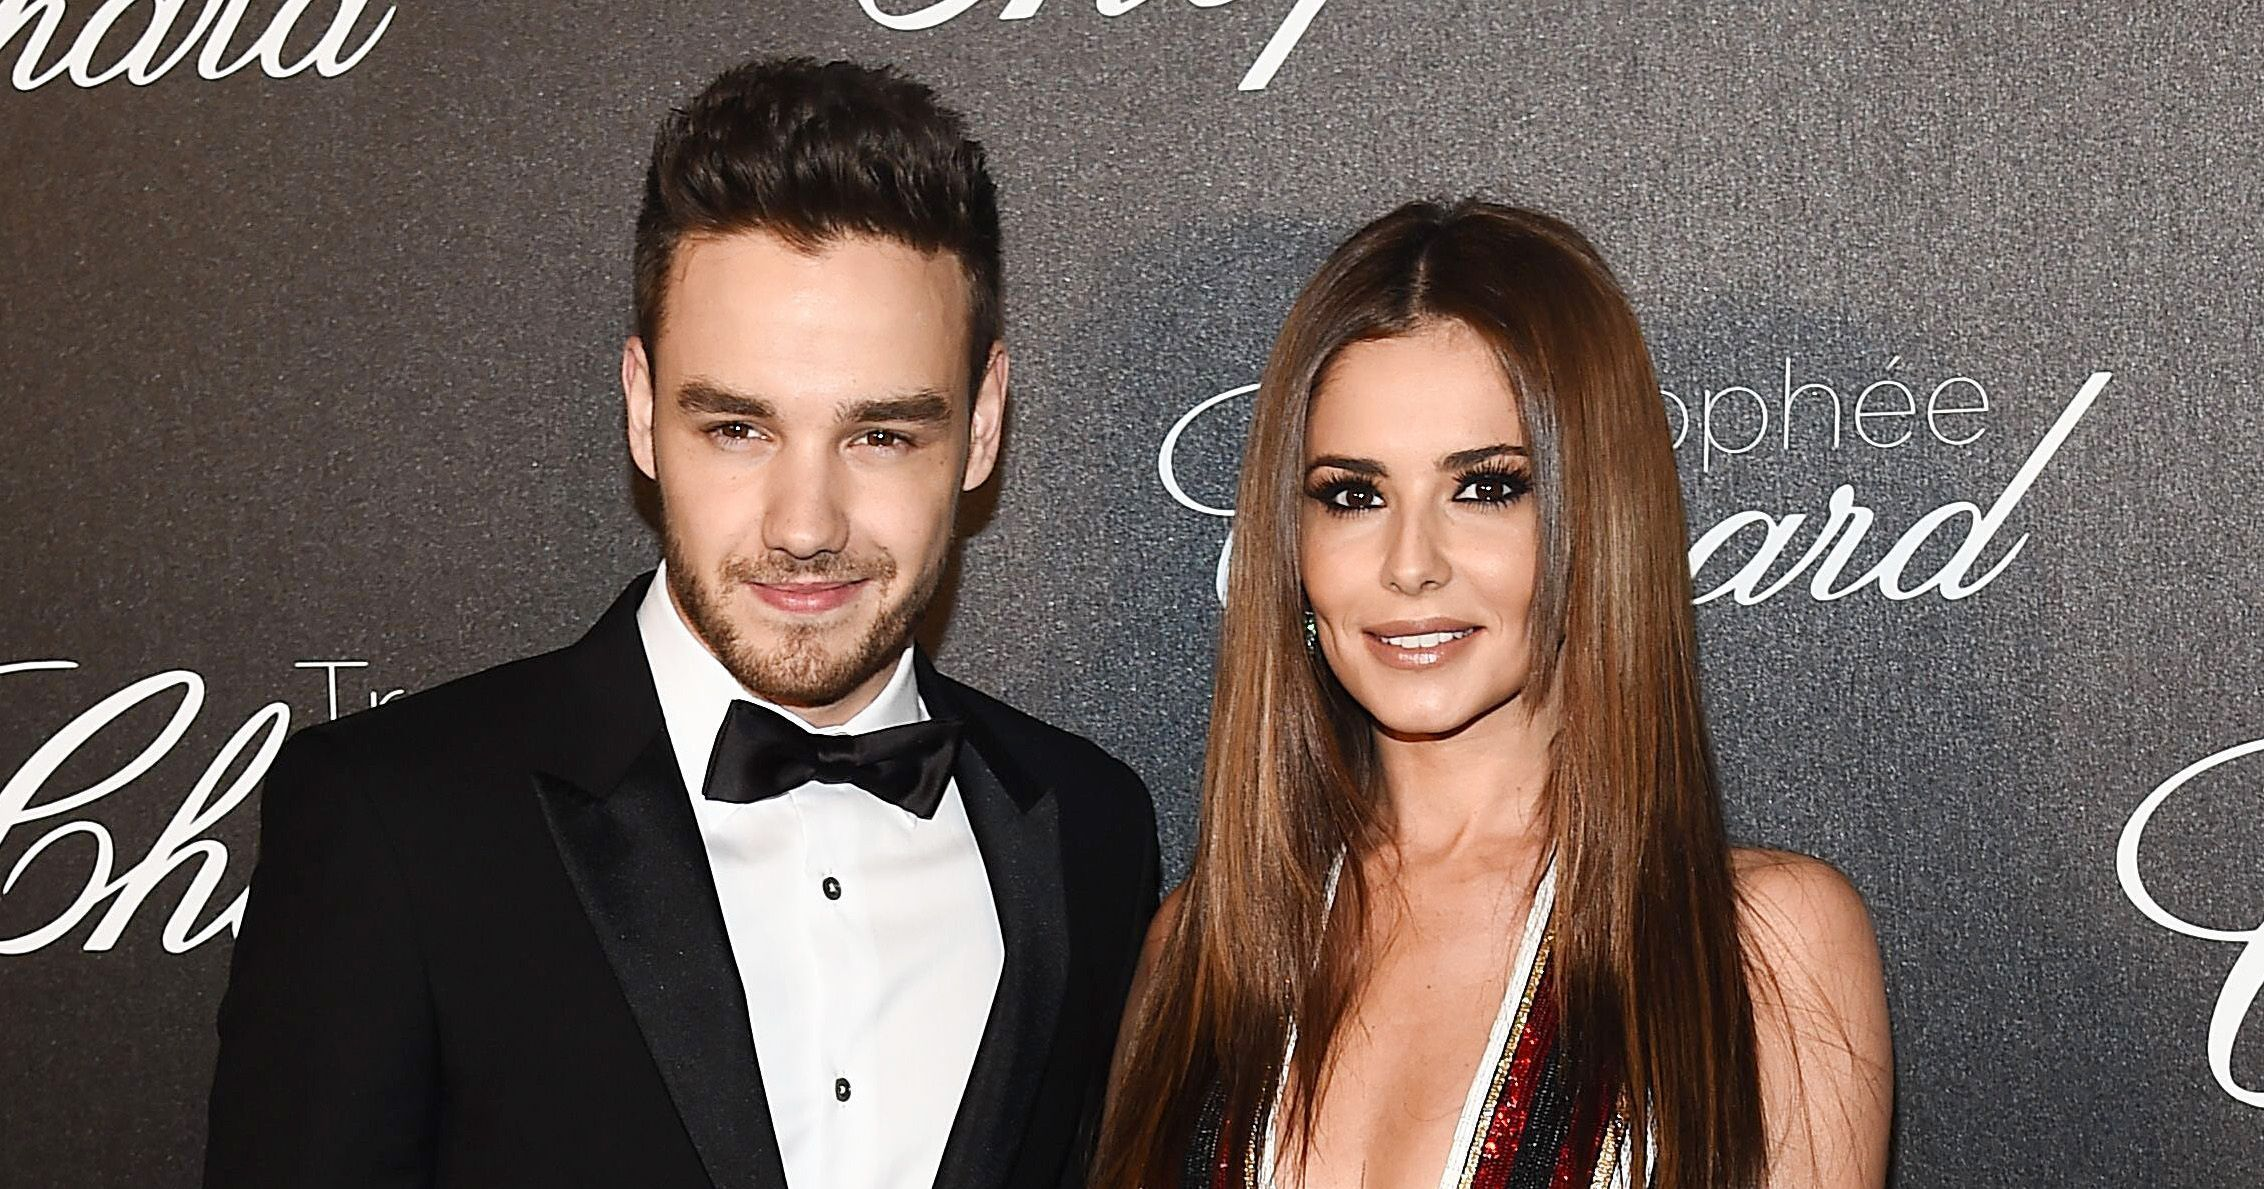 Why Everyone's Losing It Over This British Pop Star's Pregnancy Photo  http://www.refinery29.com/2017/02/142290/cheryl-cole-pregnant-photo-shoot-liam-payne?utm_source=feed&utm_medium=rss